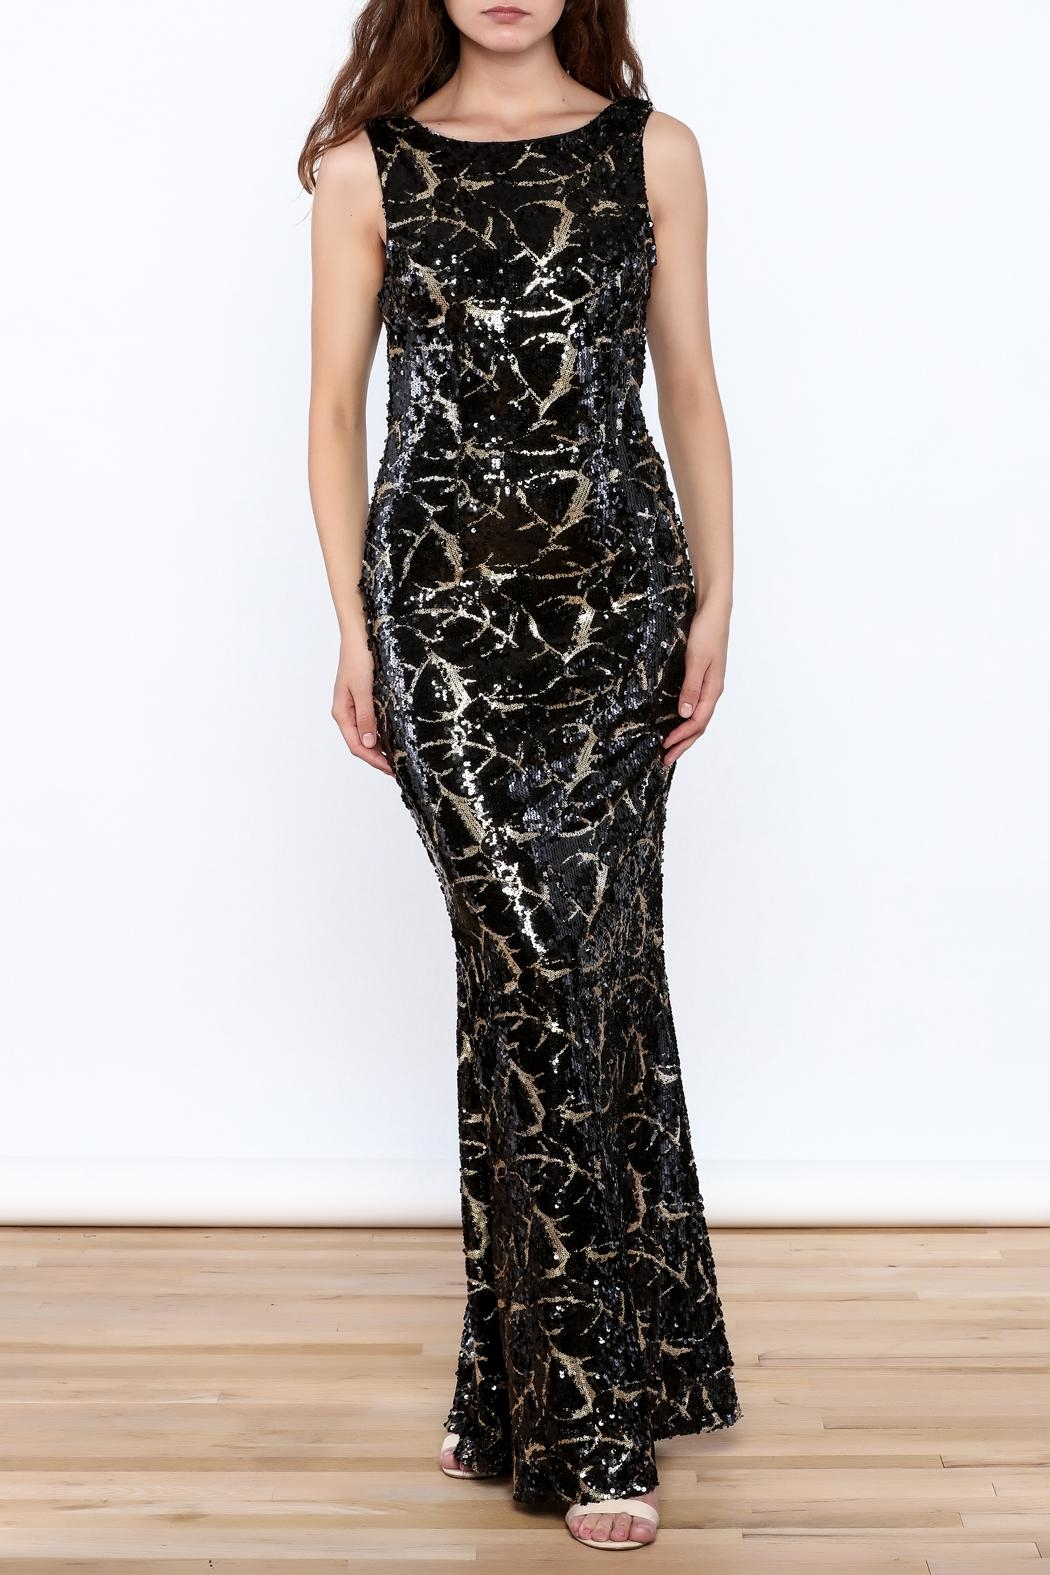 Ina Embellished Sleeveless Gown from New York City by Fashion Queen ...